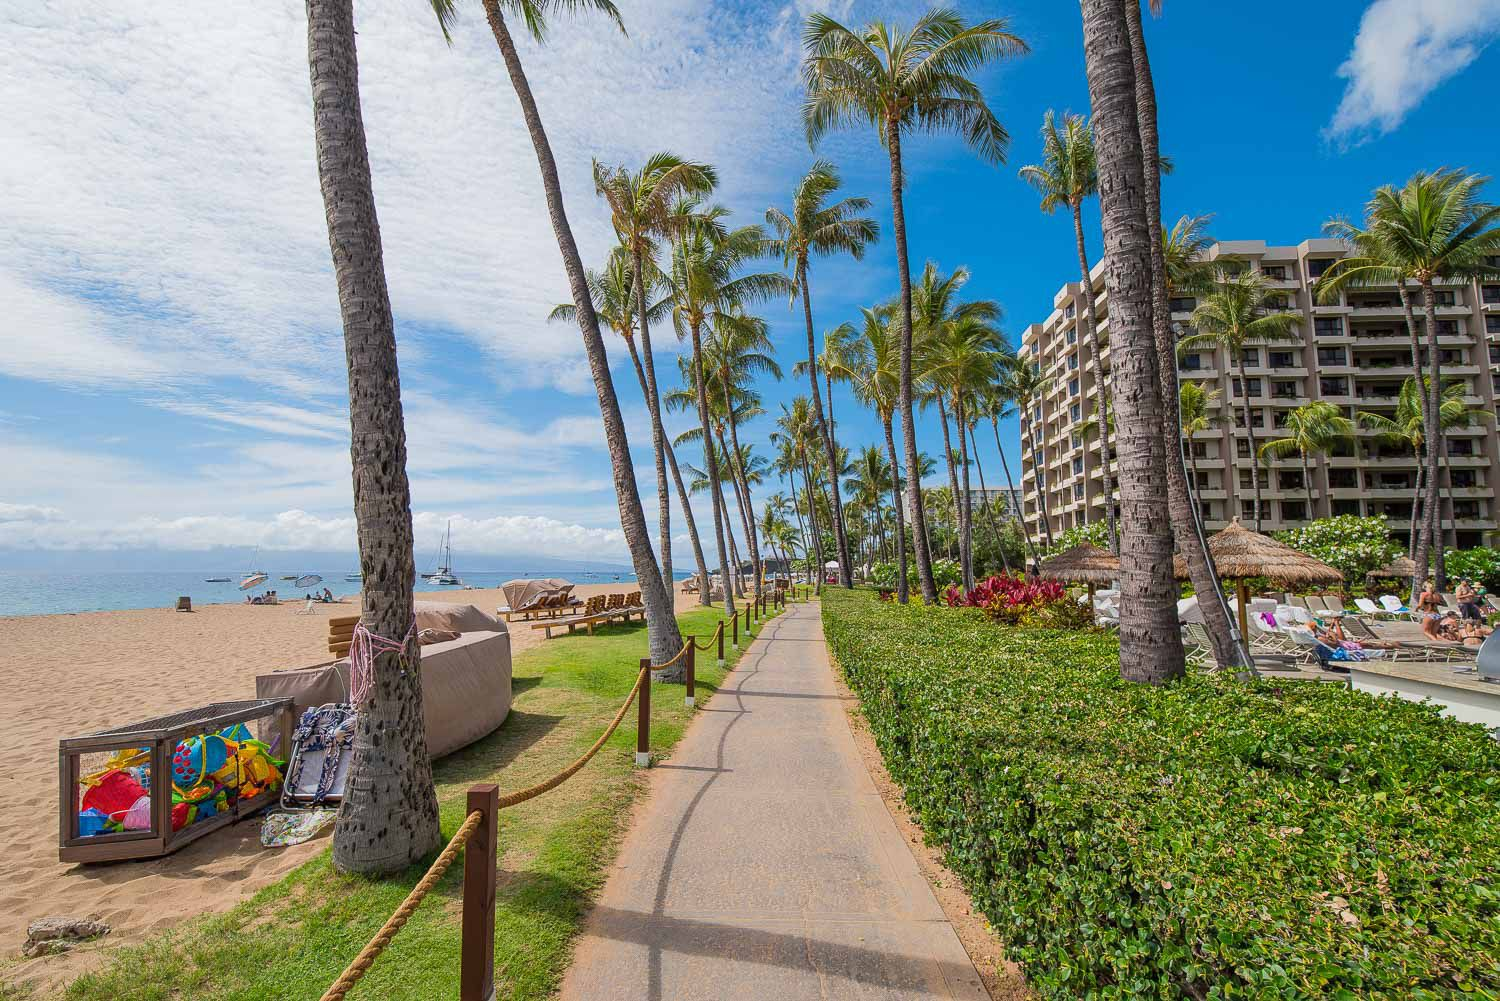 Kaanapali - Where to stay on Maui